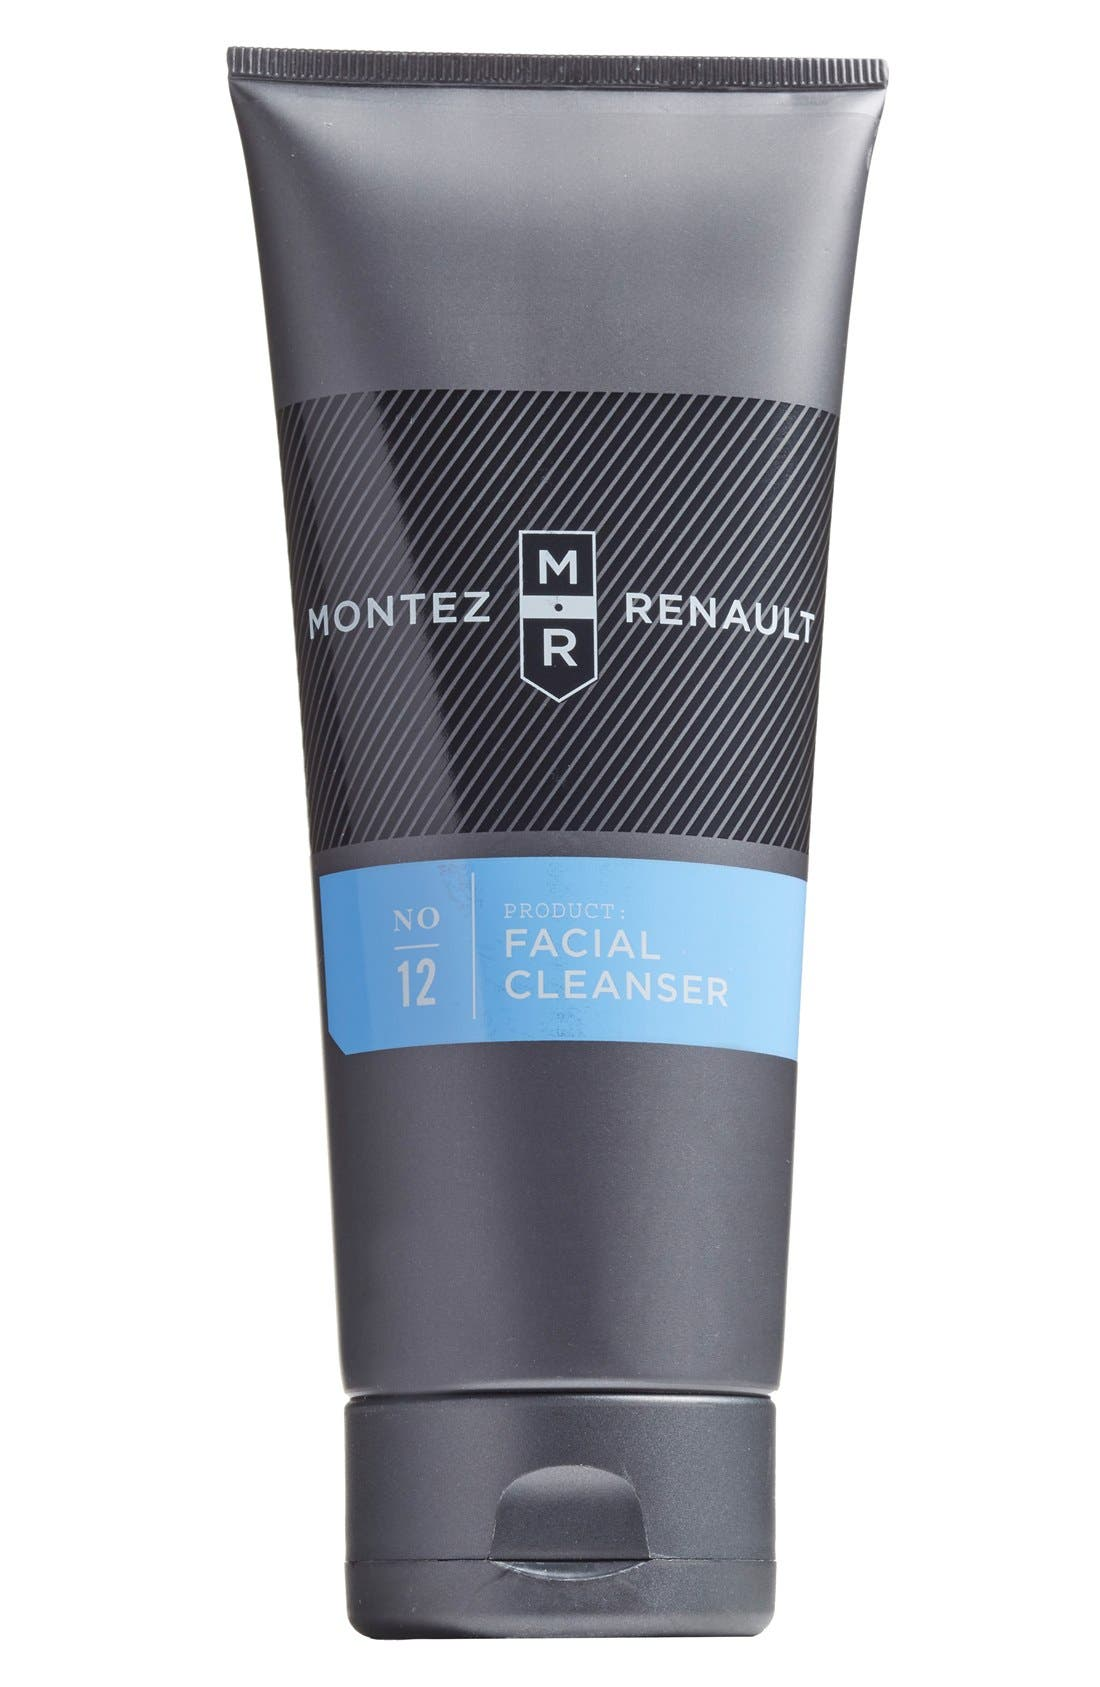 Montez Renault 'No. 12' Facial Cleanser